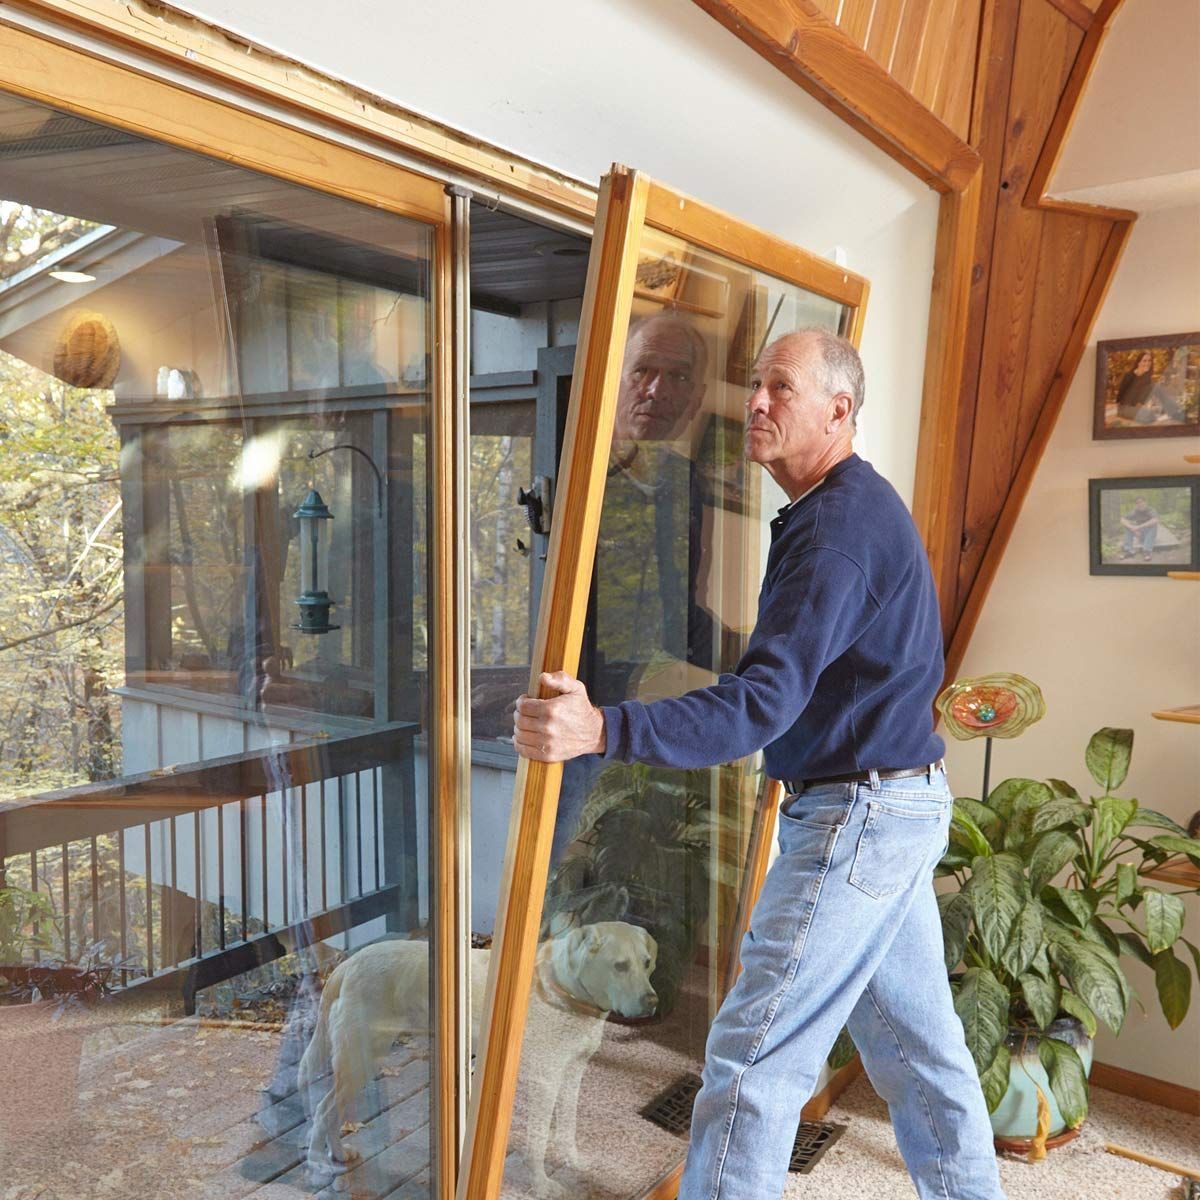 Drafty Patio Door? Weatherstripping Stops Drafts Cold